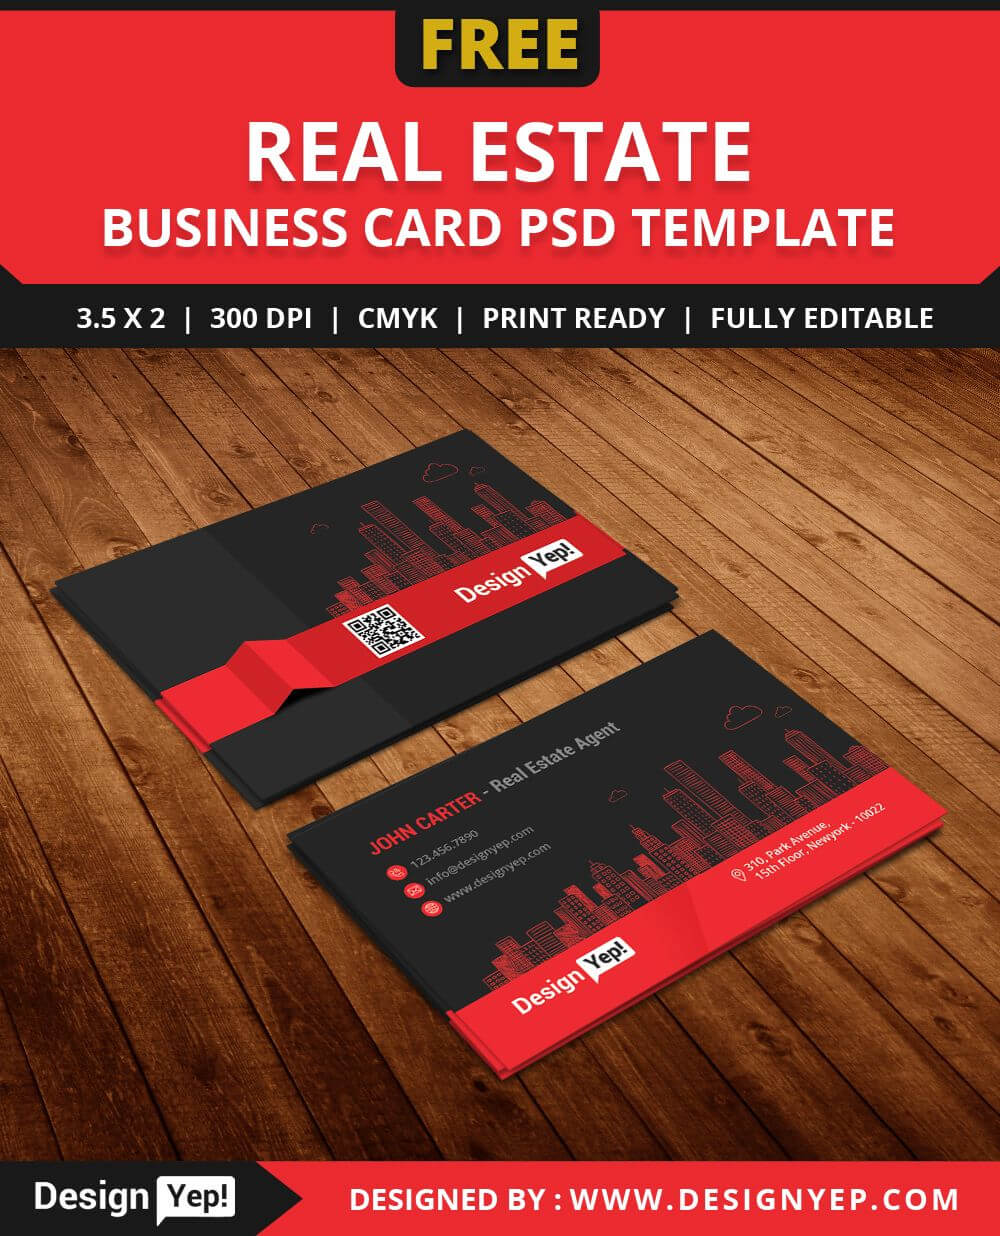 Free Real Estate Agent Business Card Template Psd | Business Pertaining To Real Estate Business Cards Templates Free